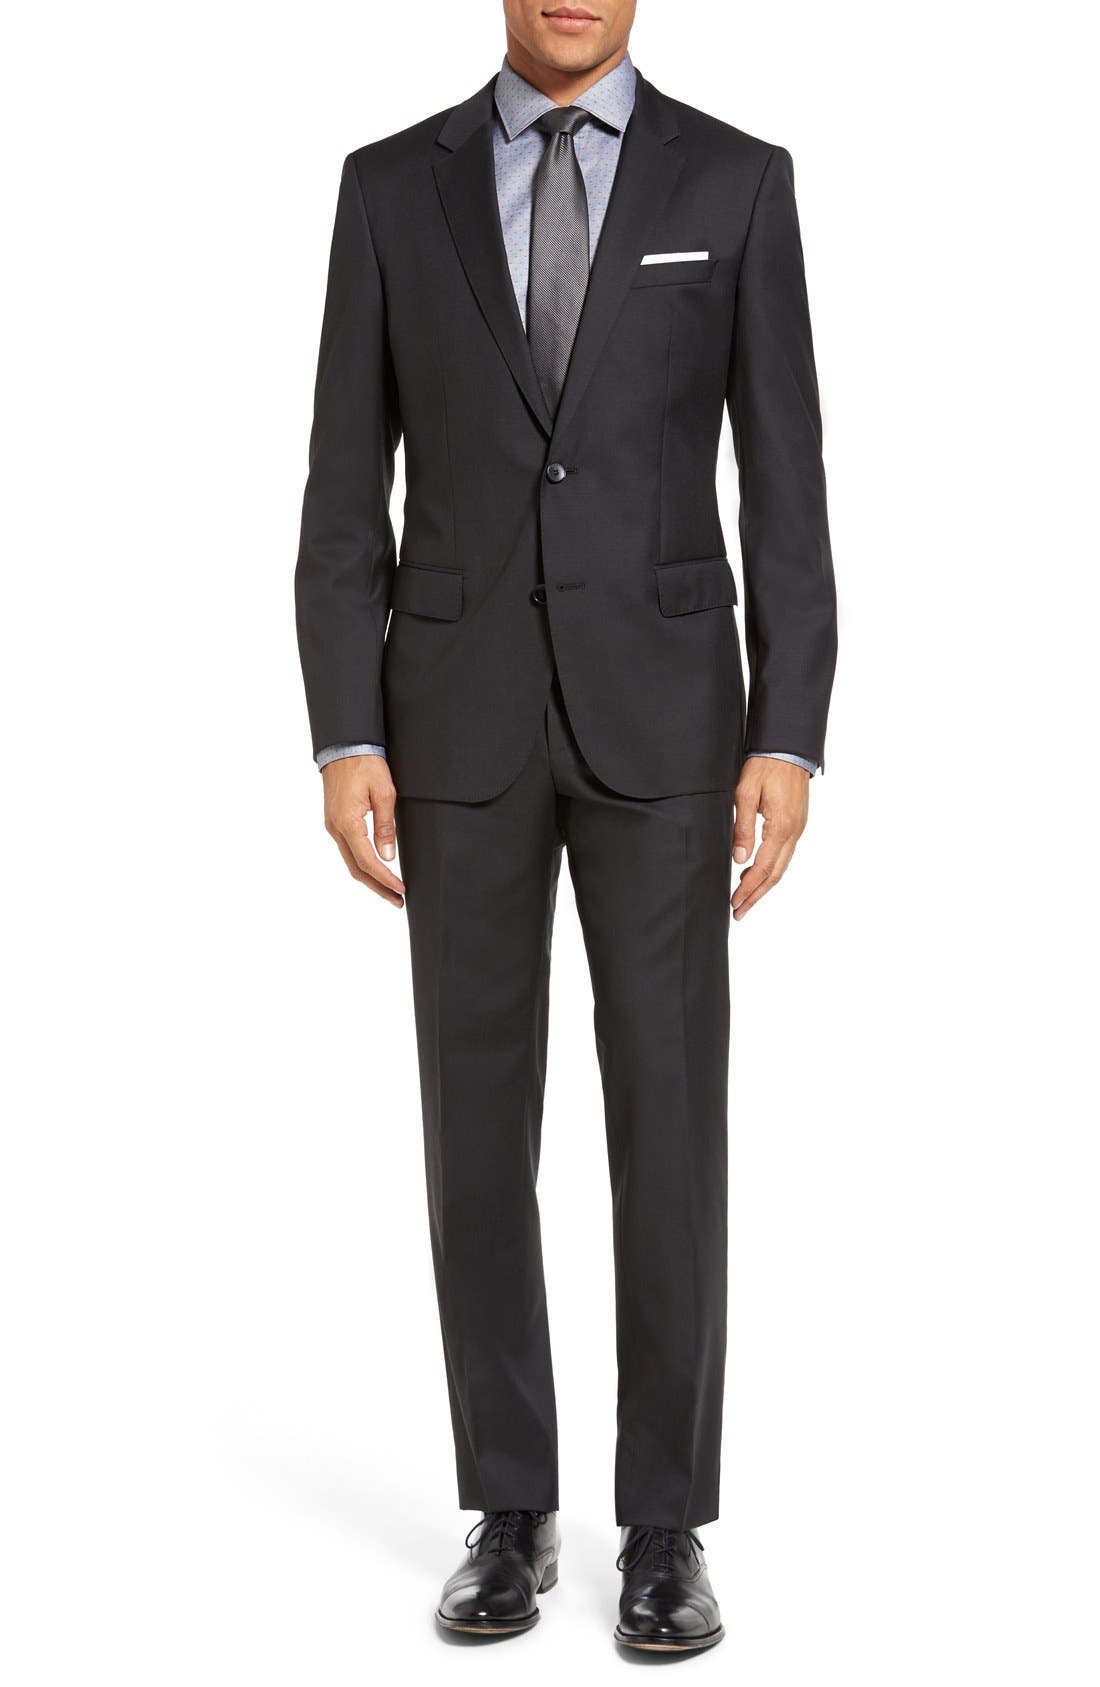 Main Image - BOSS Huge/Genius Trim Fit Wool Suit